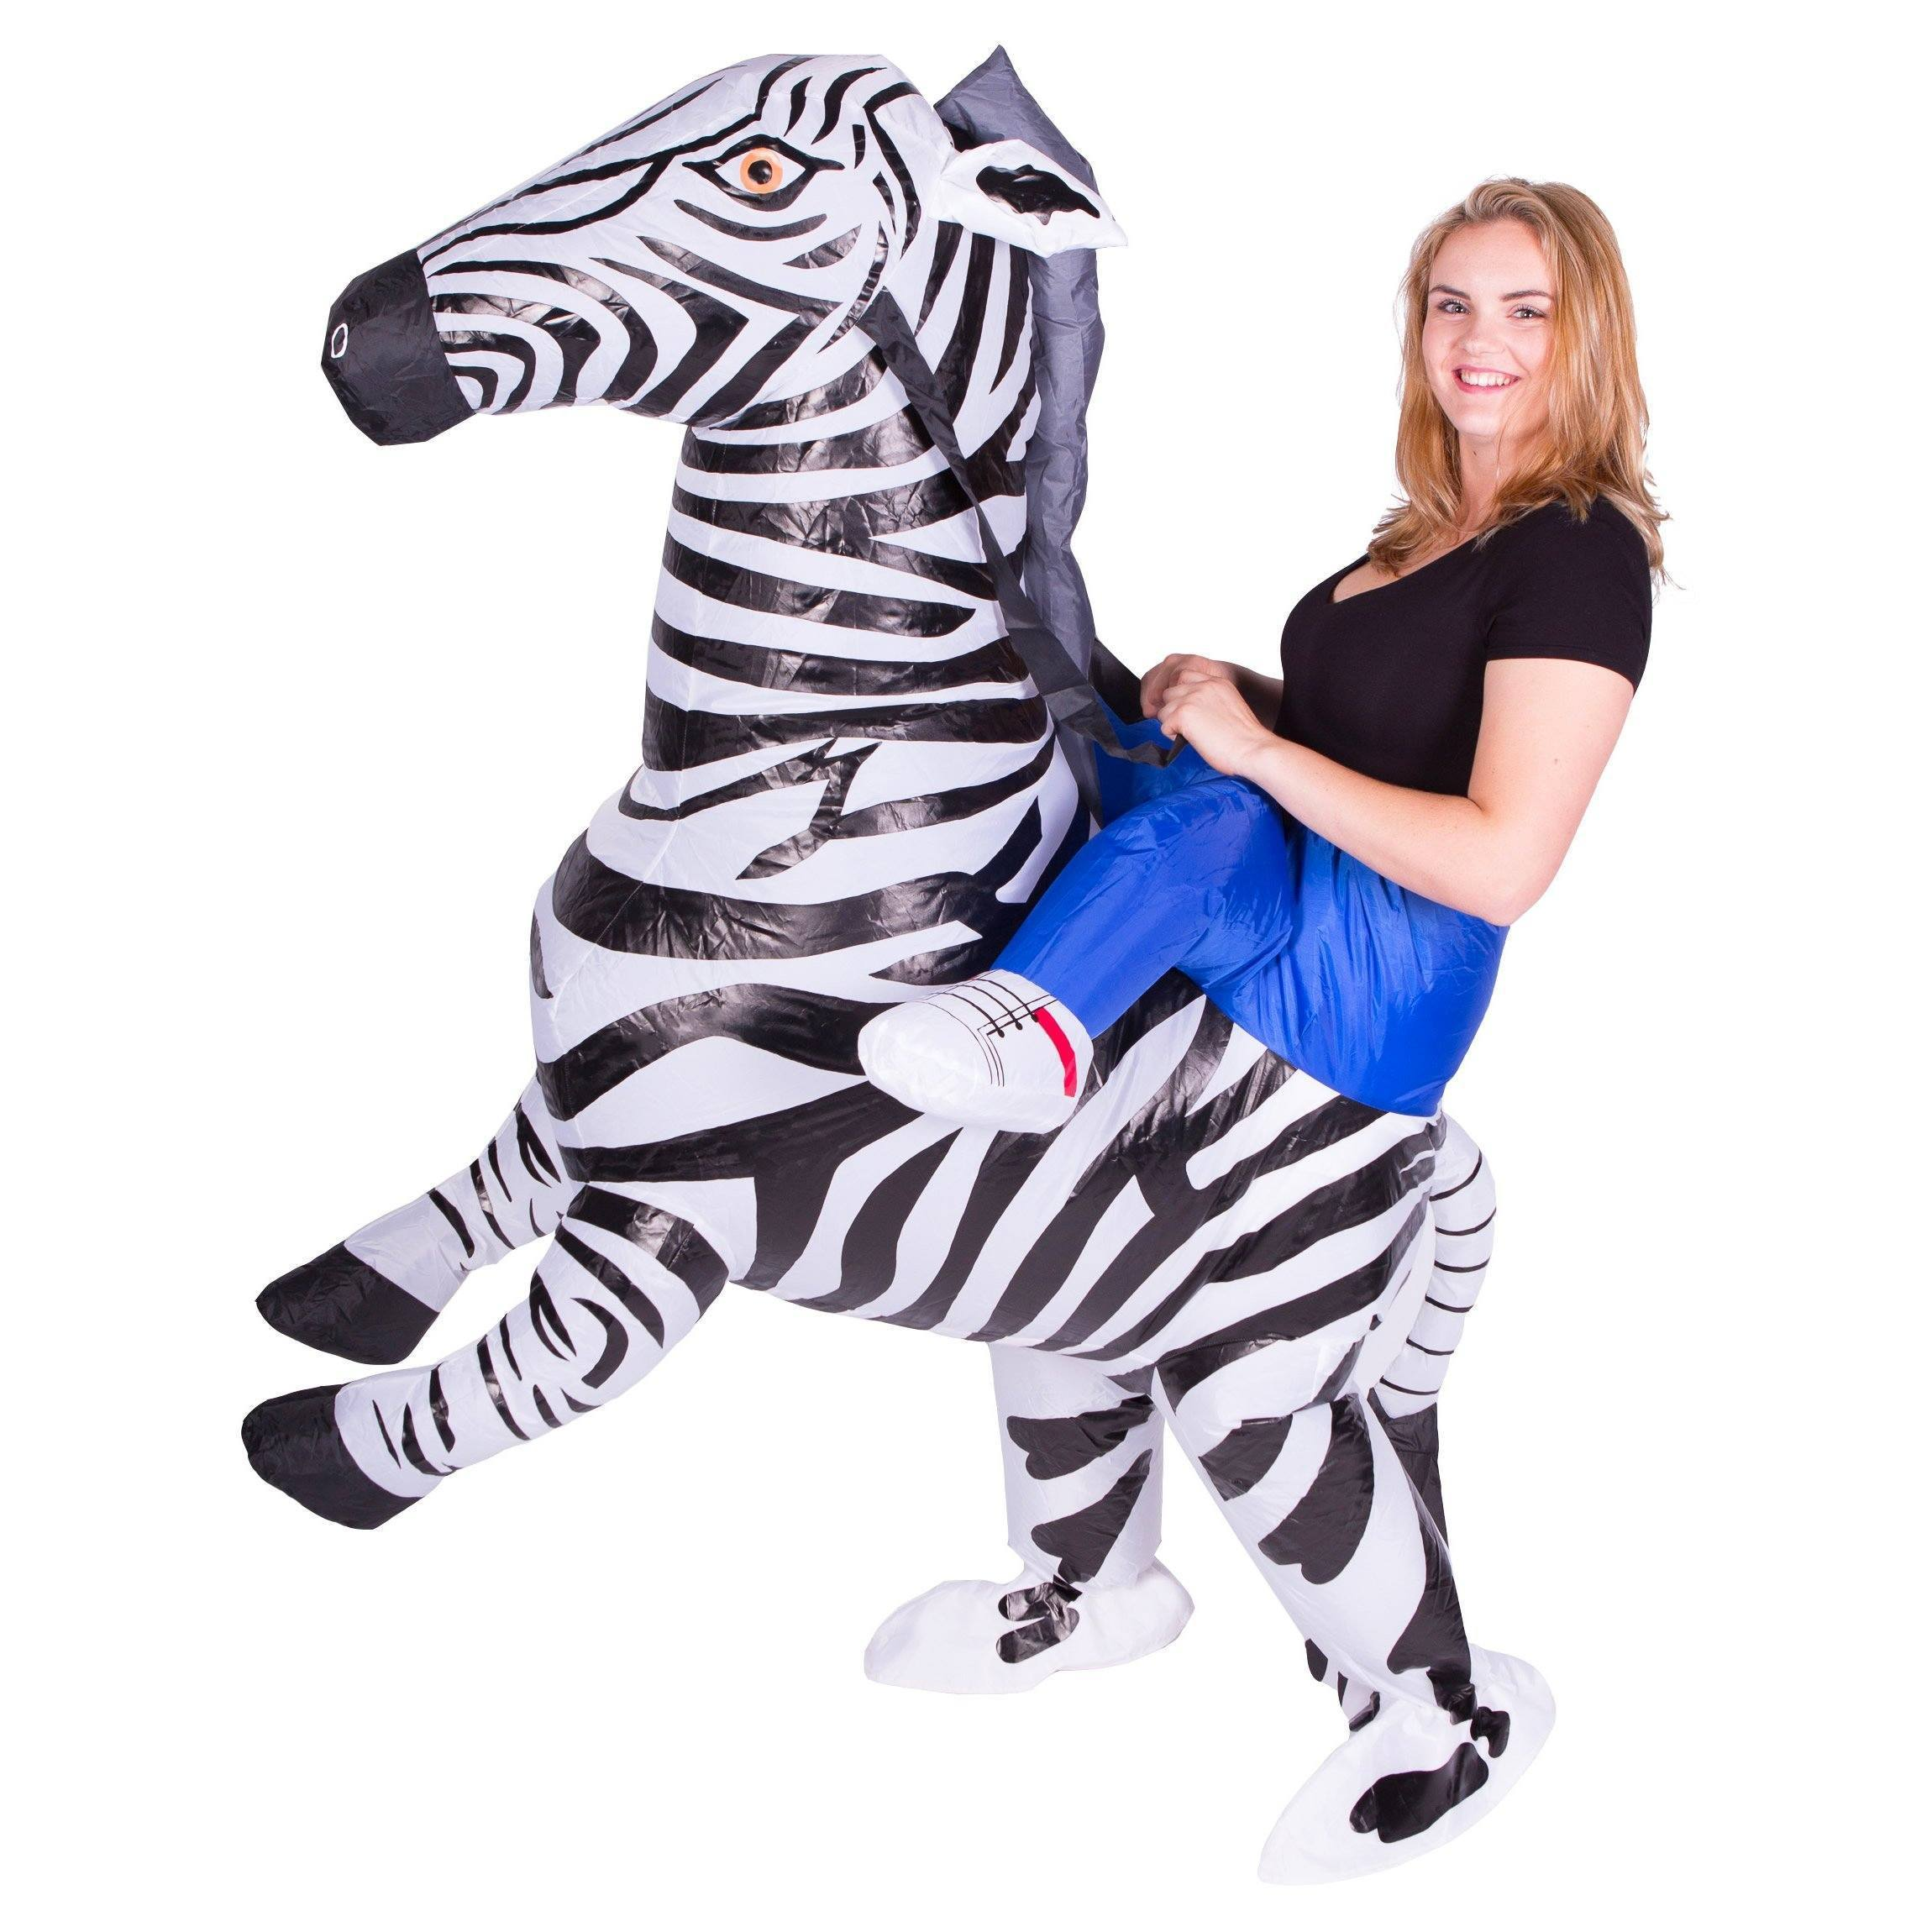 Fancy Dress - Inflatable Zebra Costume